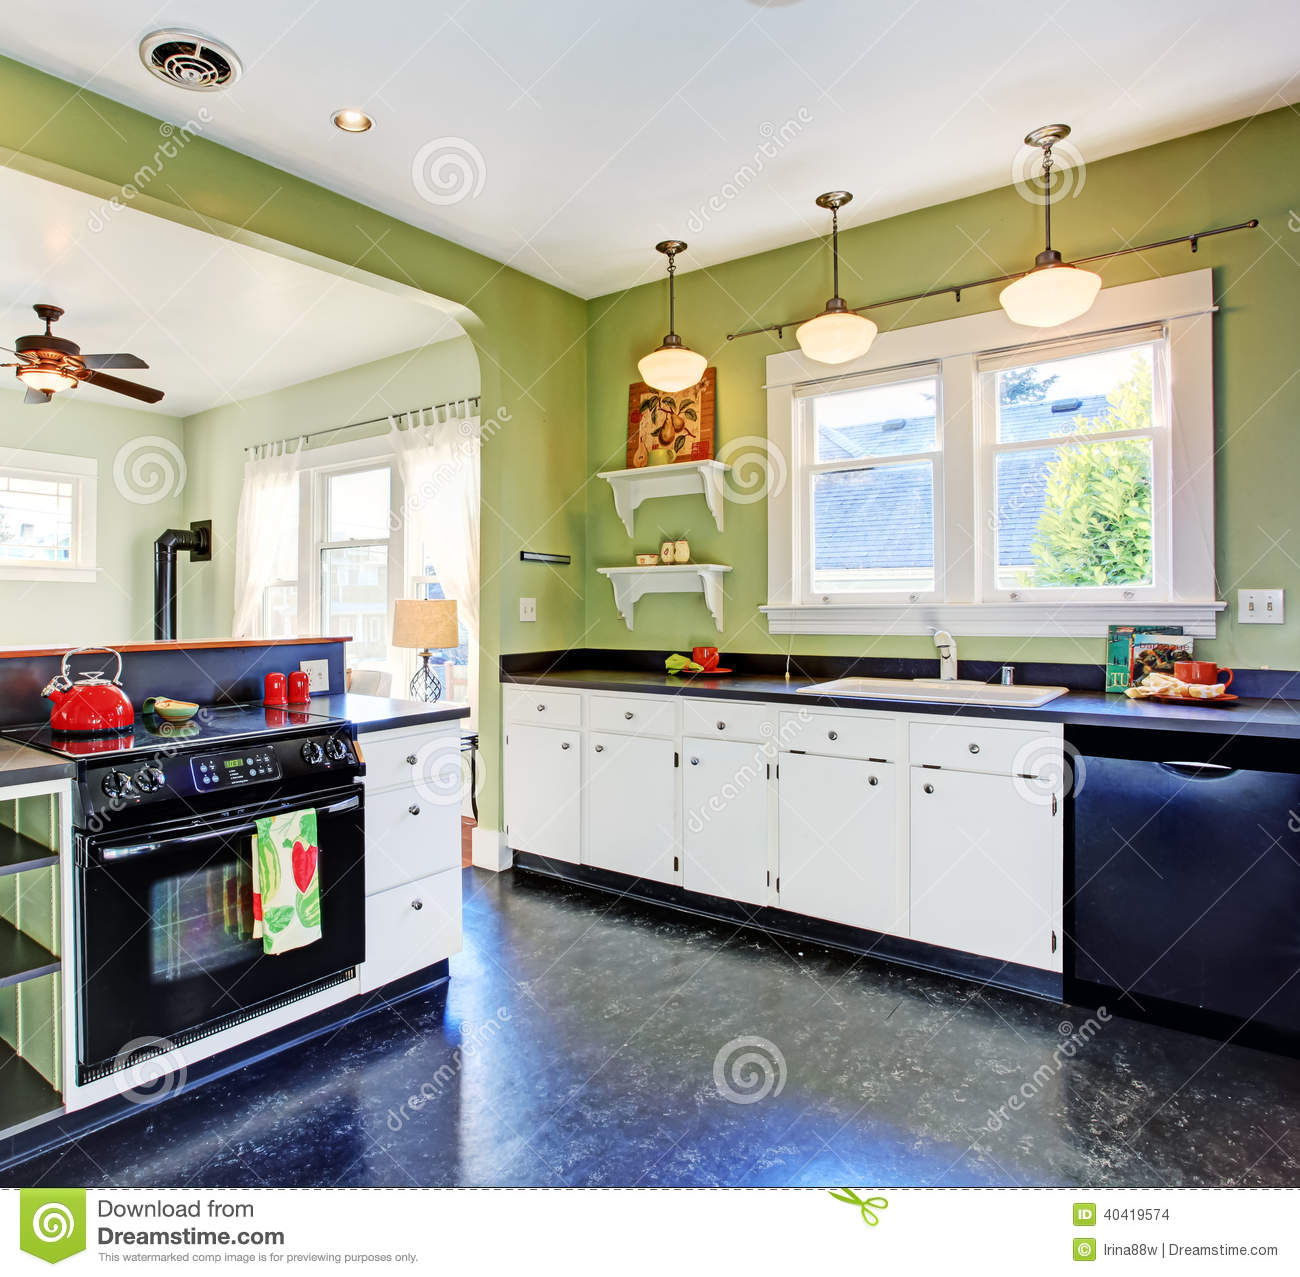 Orange Kitchen Room With White Cabinets Stock Image: Kitchen Room Interior Stock Photo. Image Of Real, Ceiling